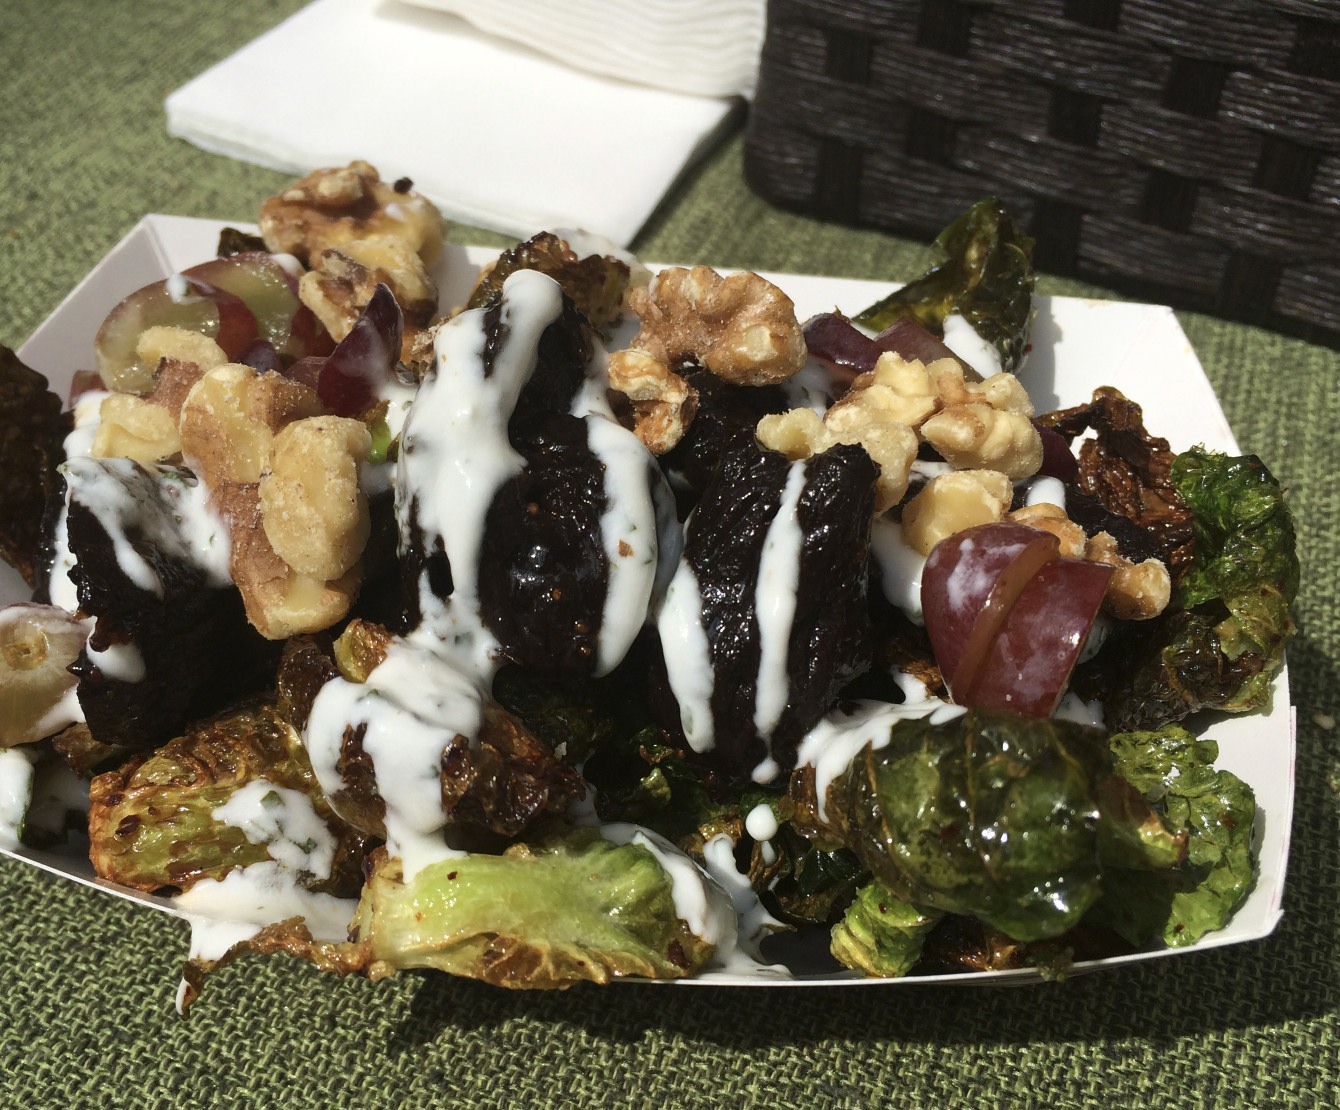 Brussels sprout with mission figs, mint, yogurt, walnuts, and grapes